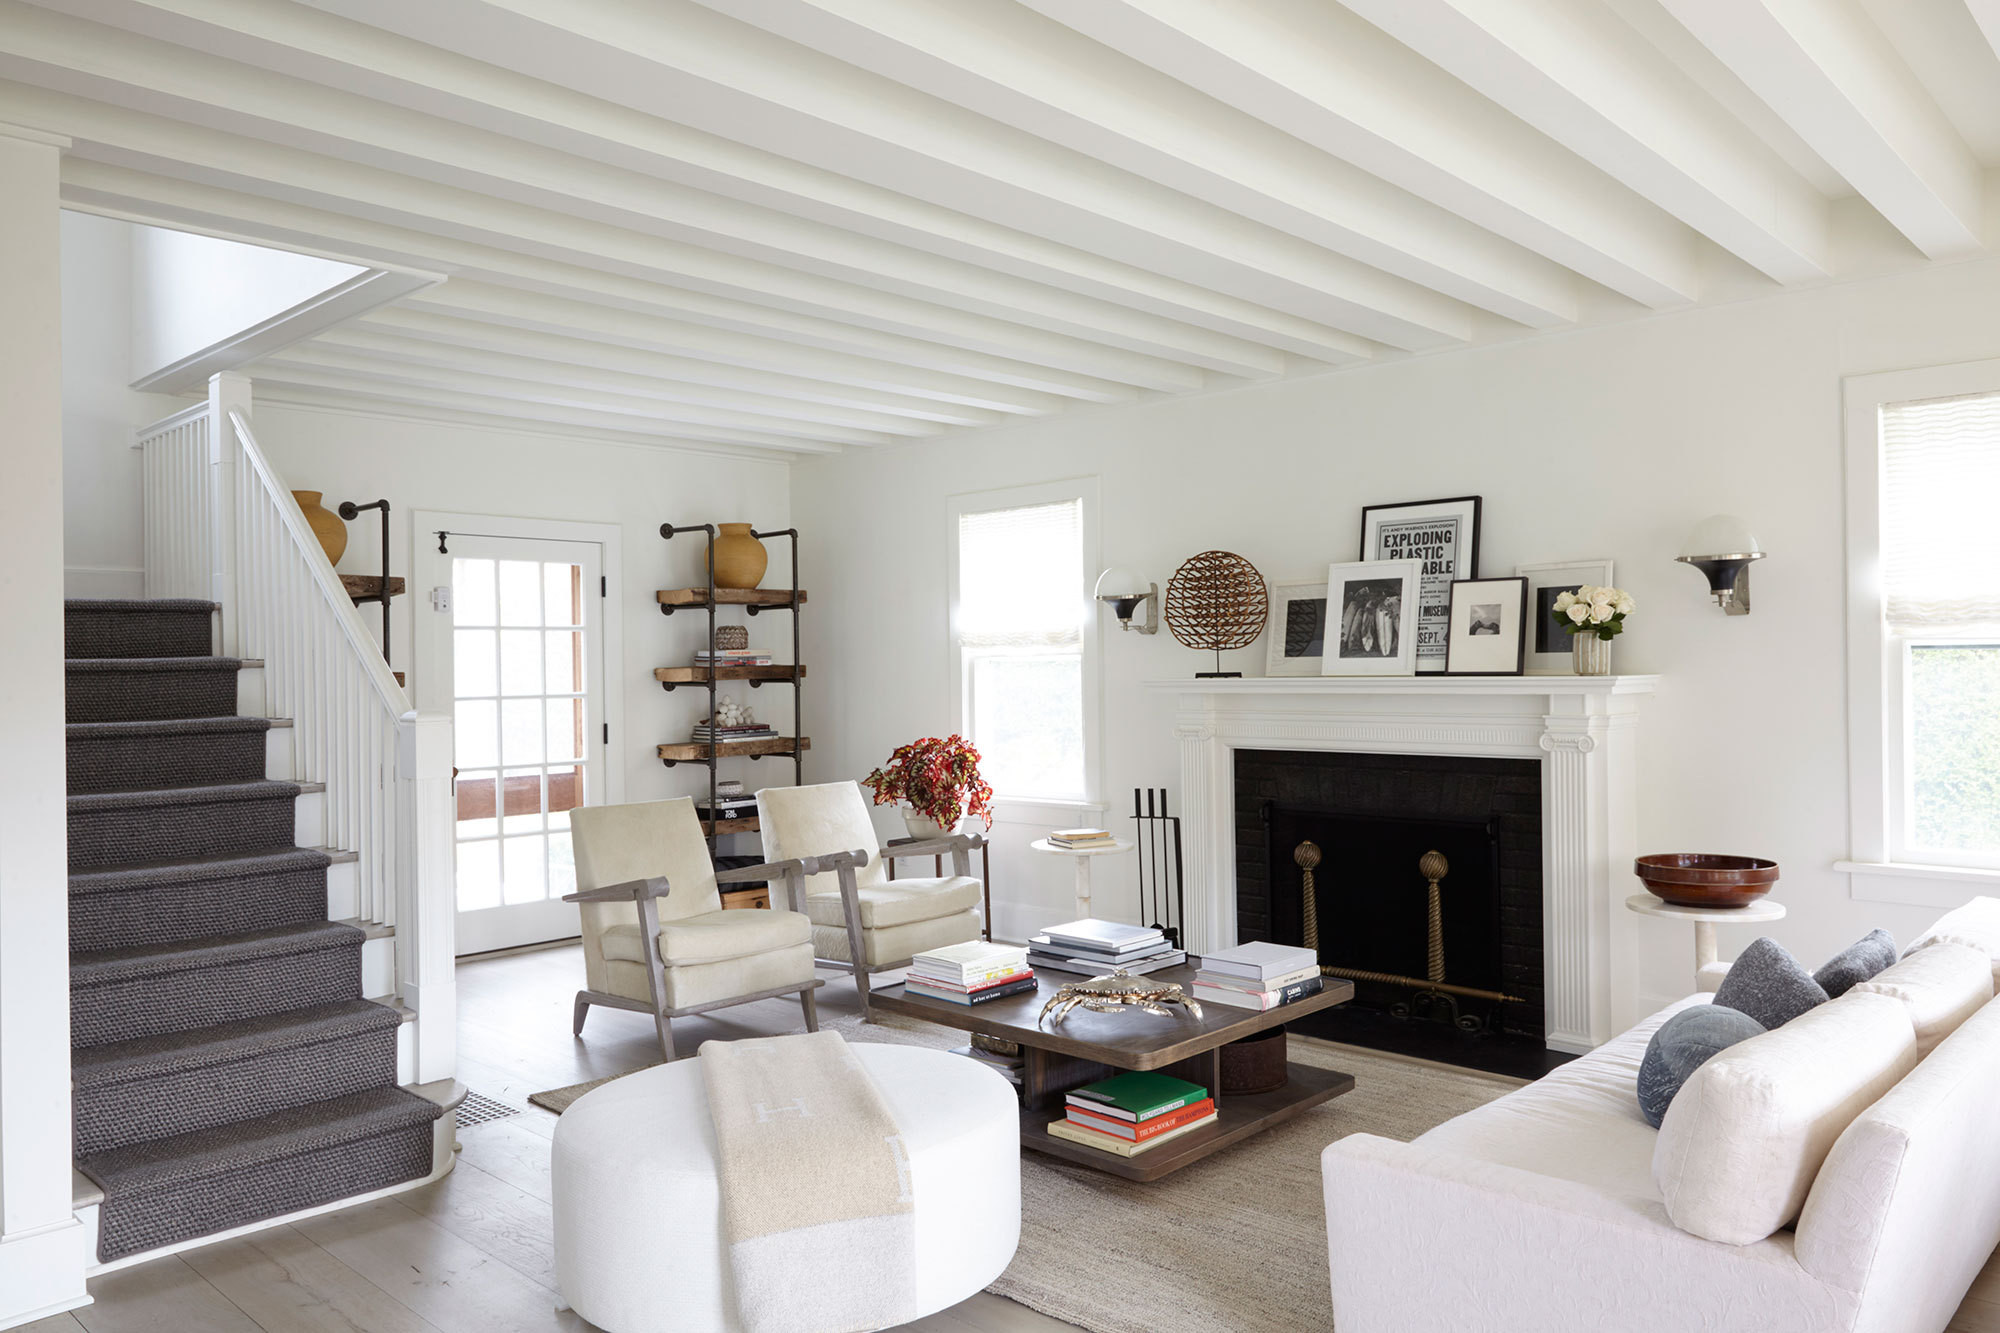 Container Haus New York Your Dream Weekend House In The Hamptons Home Tour Lonny